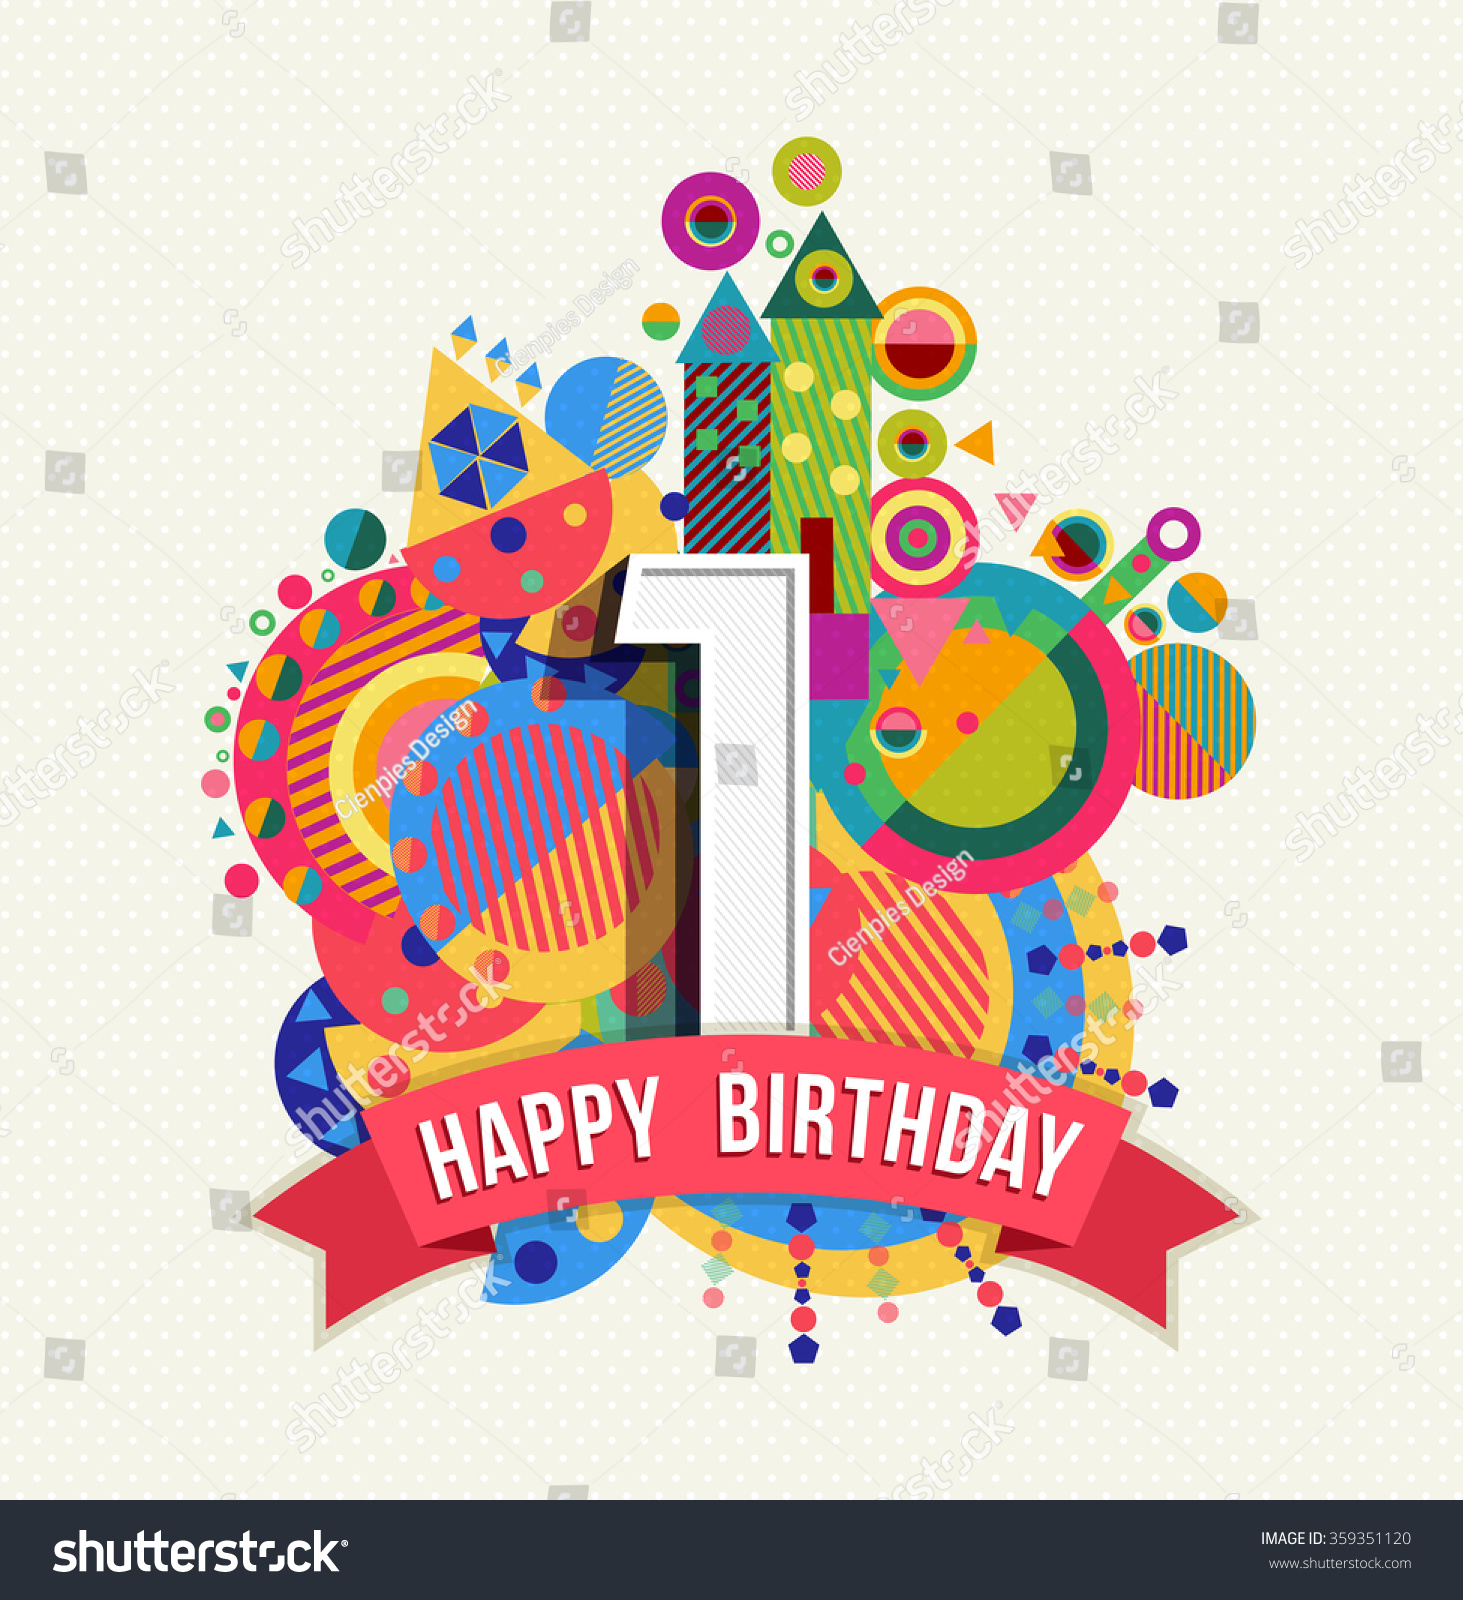 Happy Birthday One 1 Year Fun Design With Number Text Happy Birthday Wishes For One Year